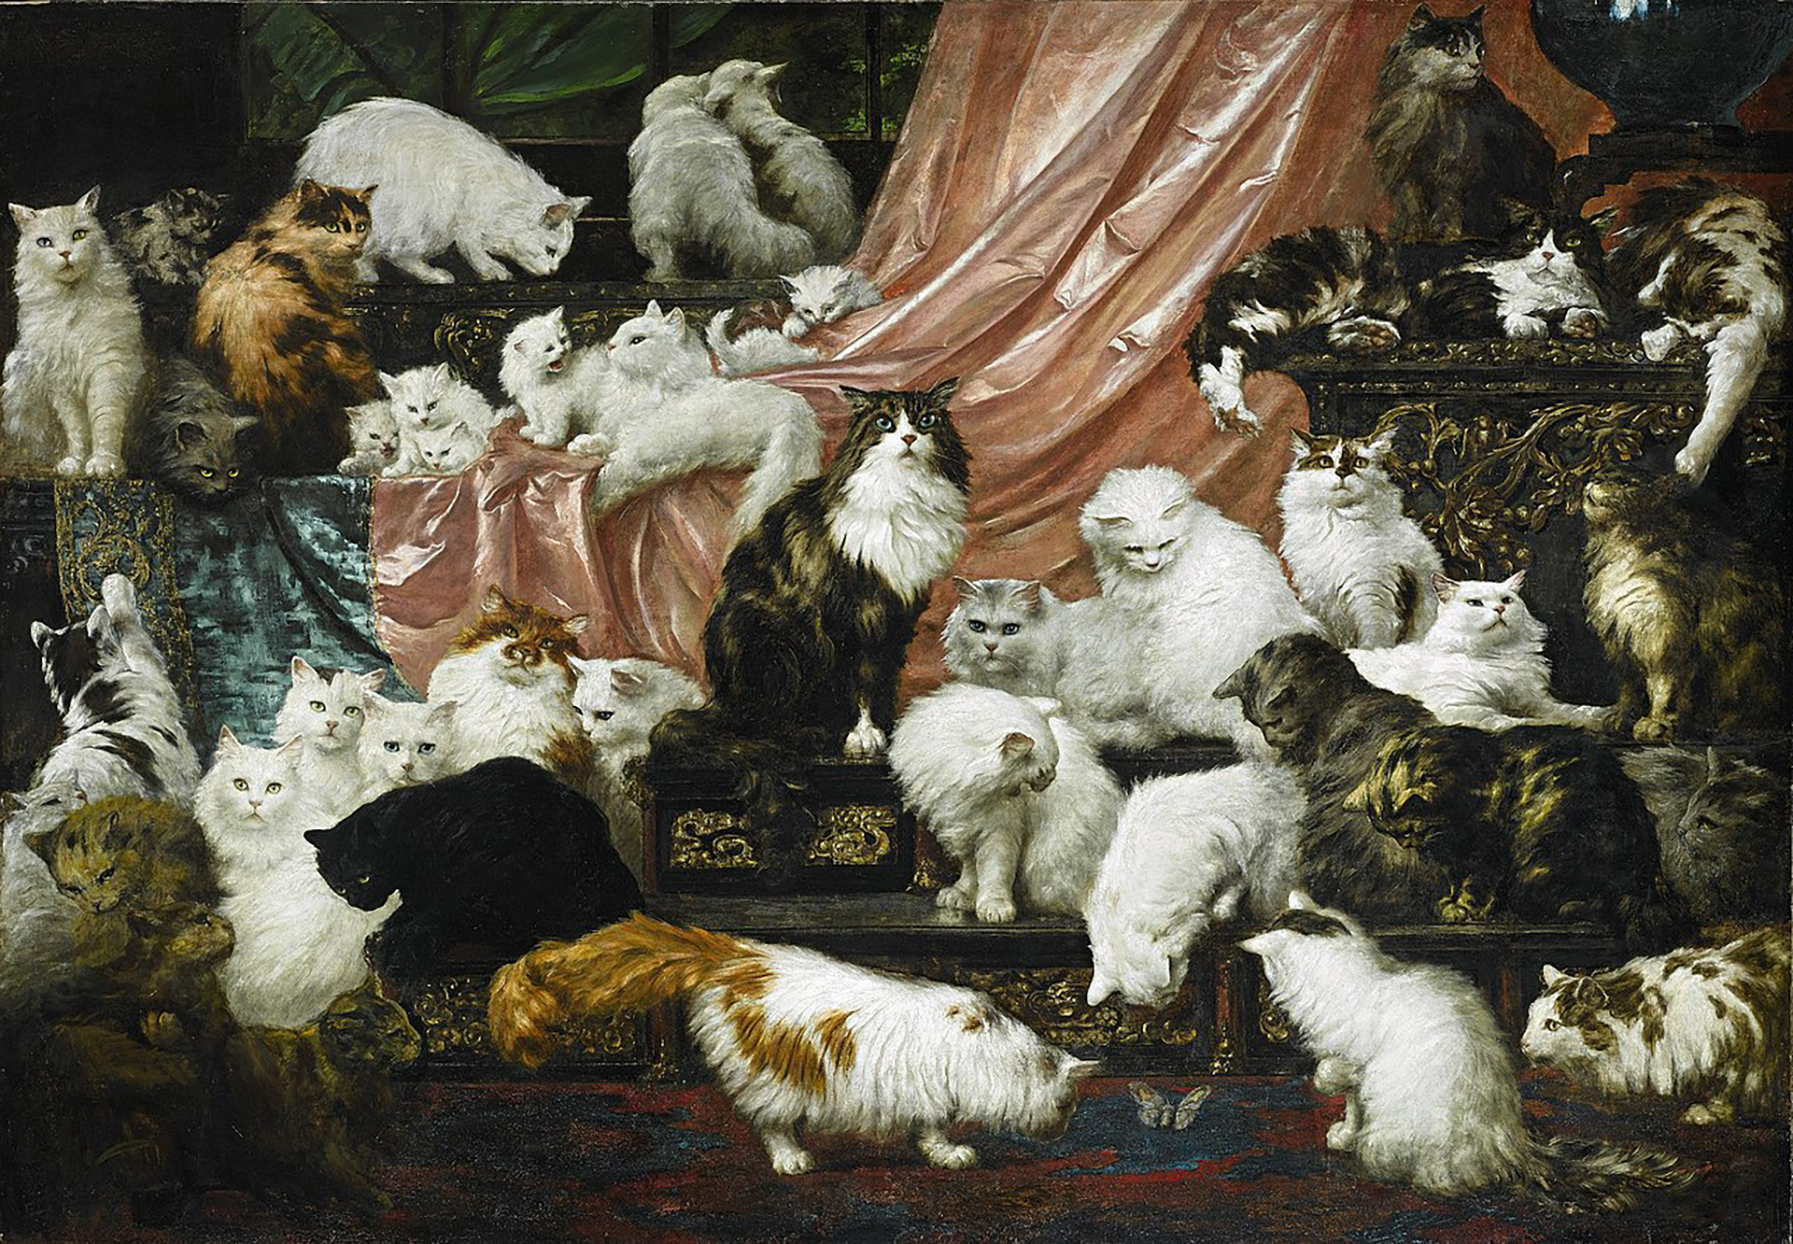 Painting of many persian cats of white, black and tabby variety